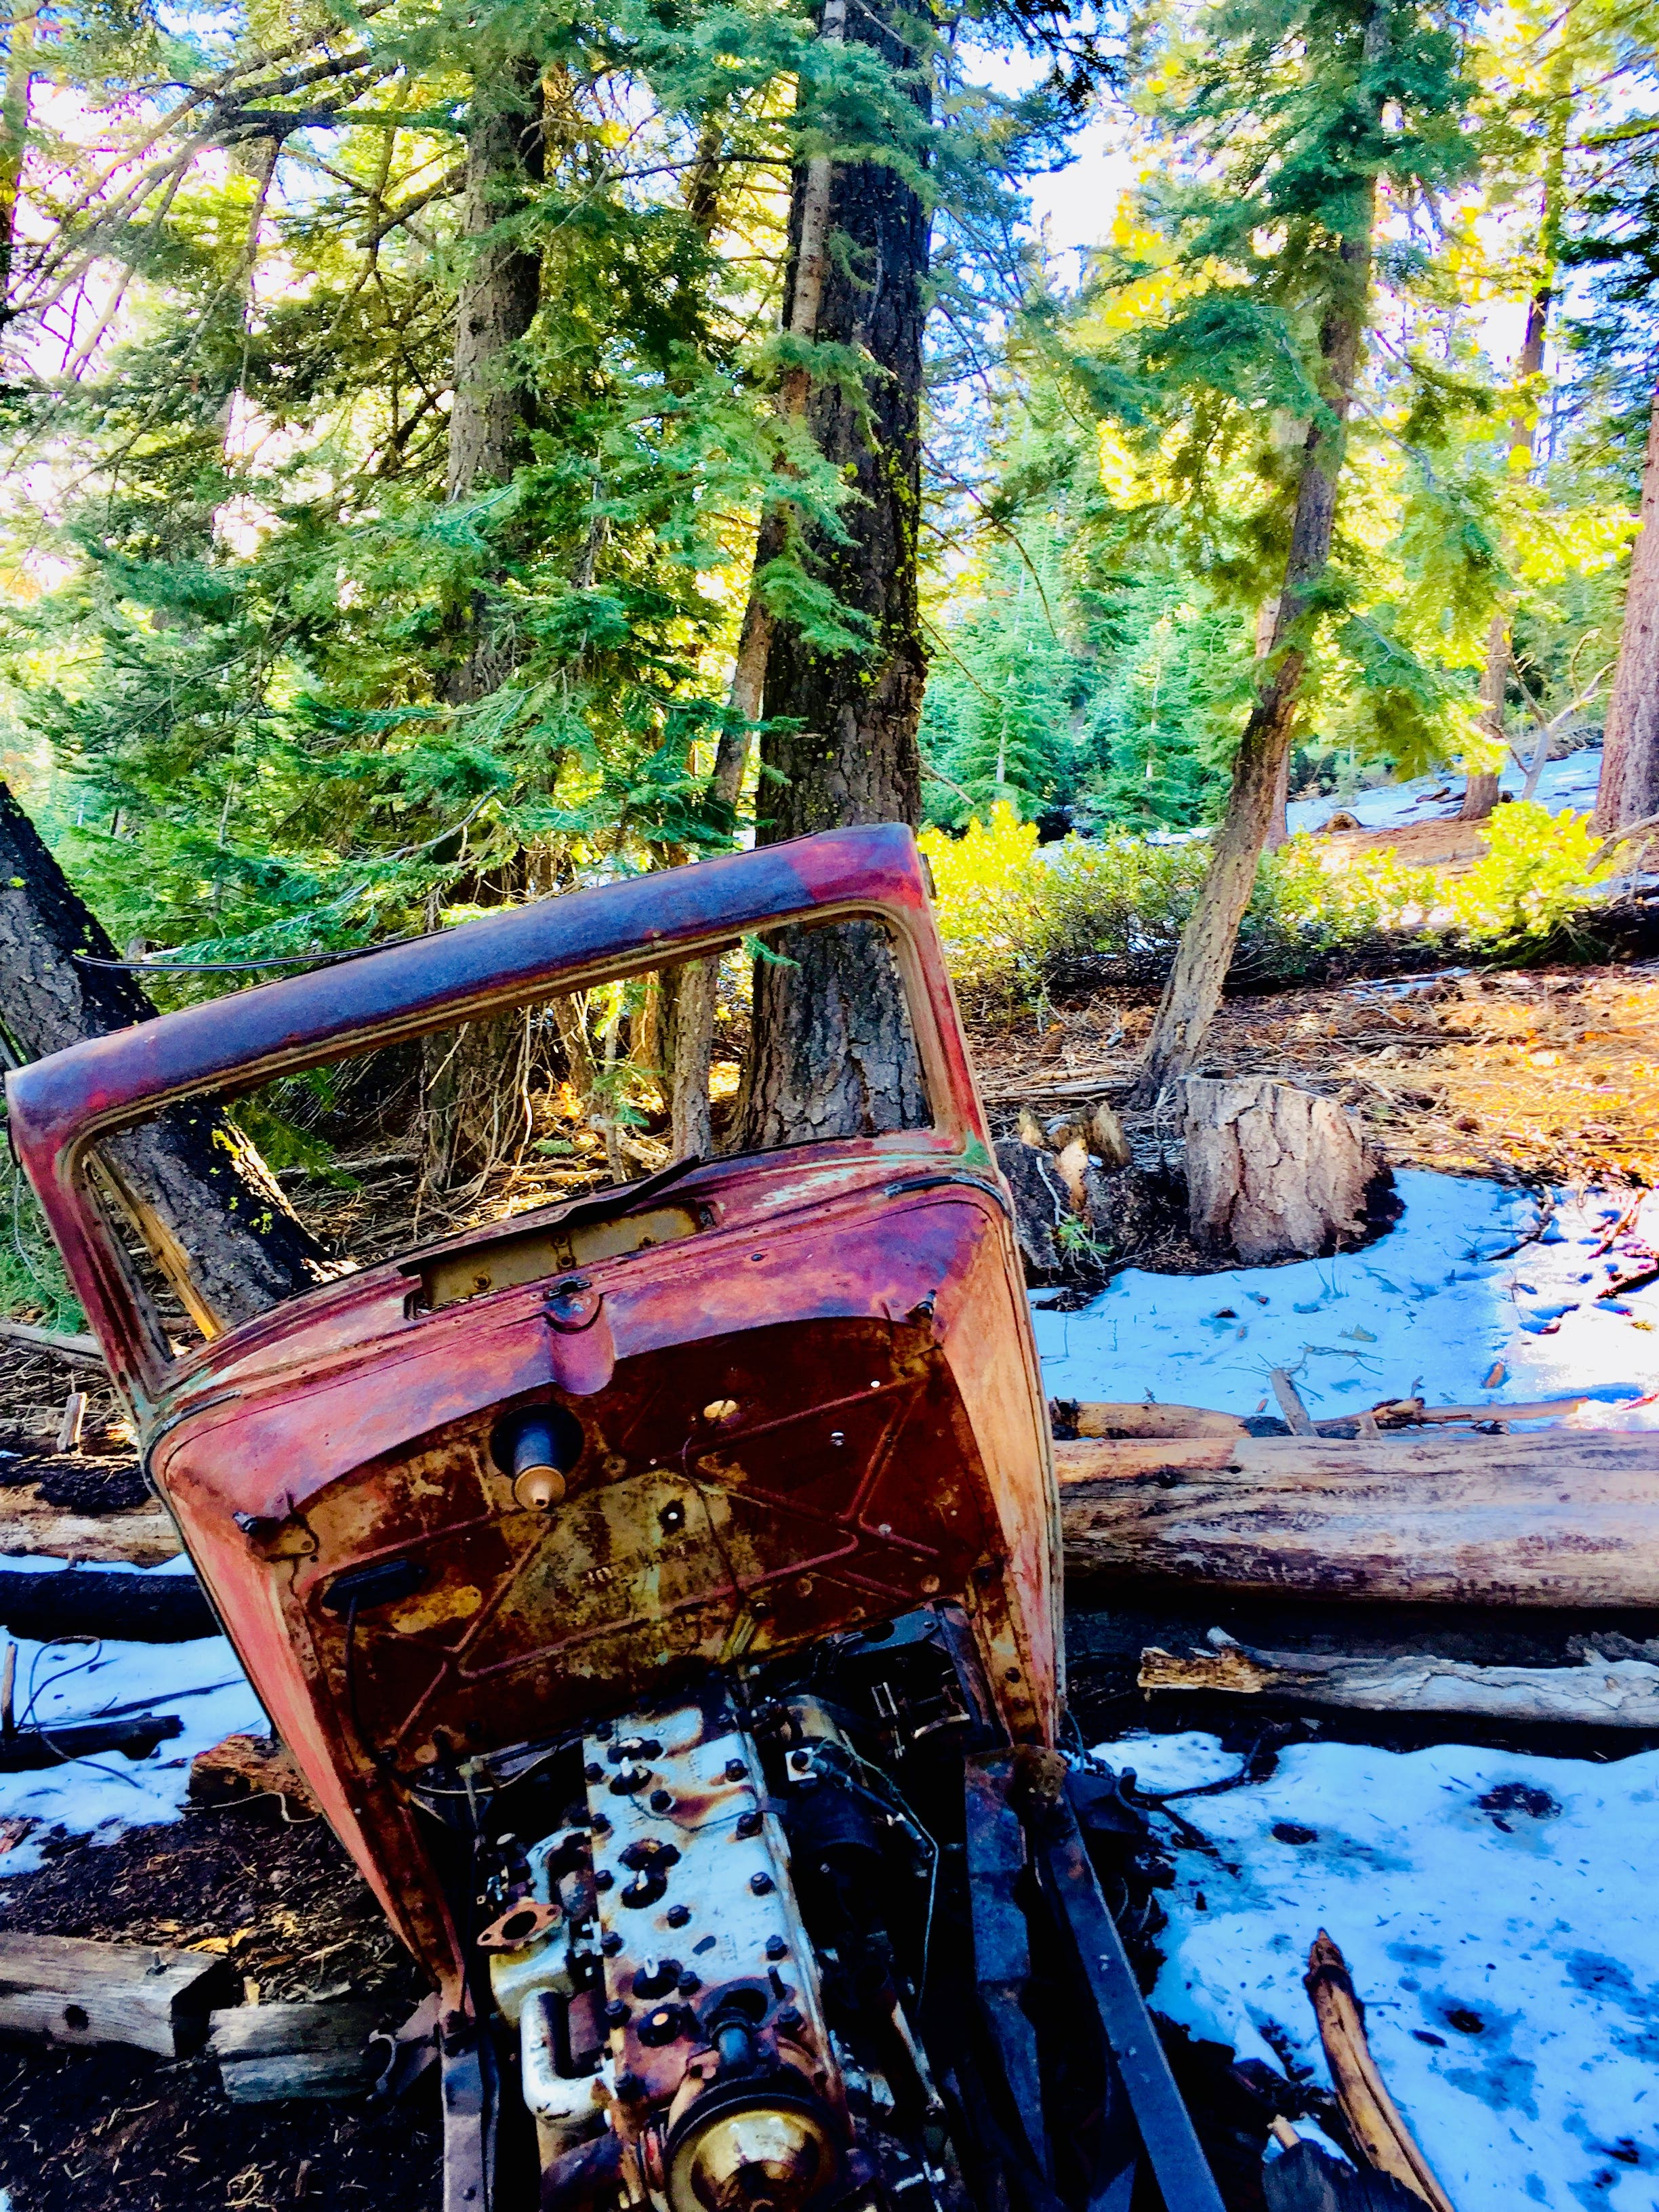 Free stock photo of Old ford in the forest, Sierra Nevada mountains